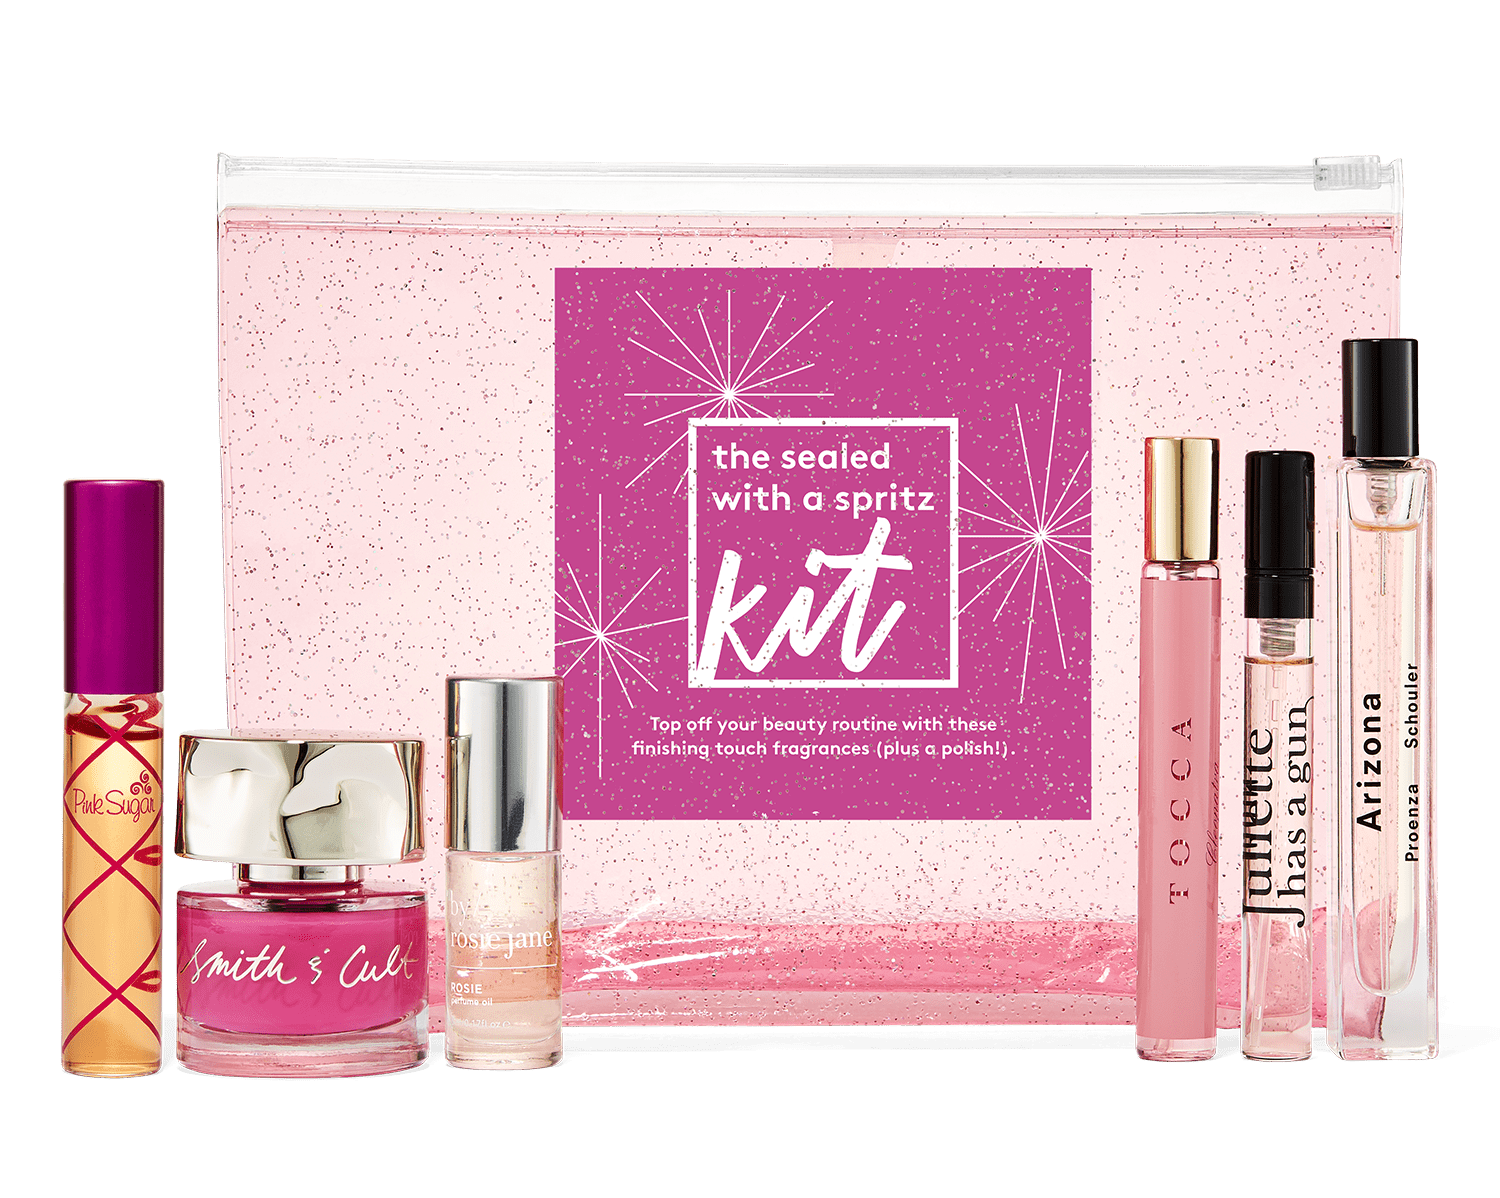 New Birchbox Sealed With a Spritz Kit + Free Gift Coupons!